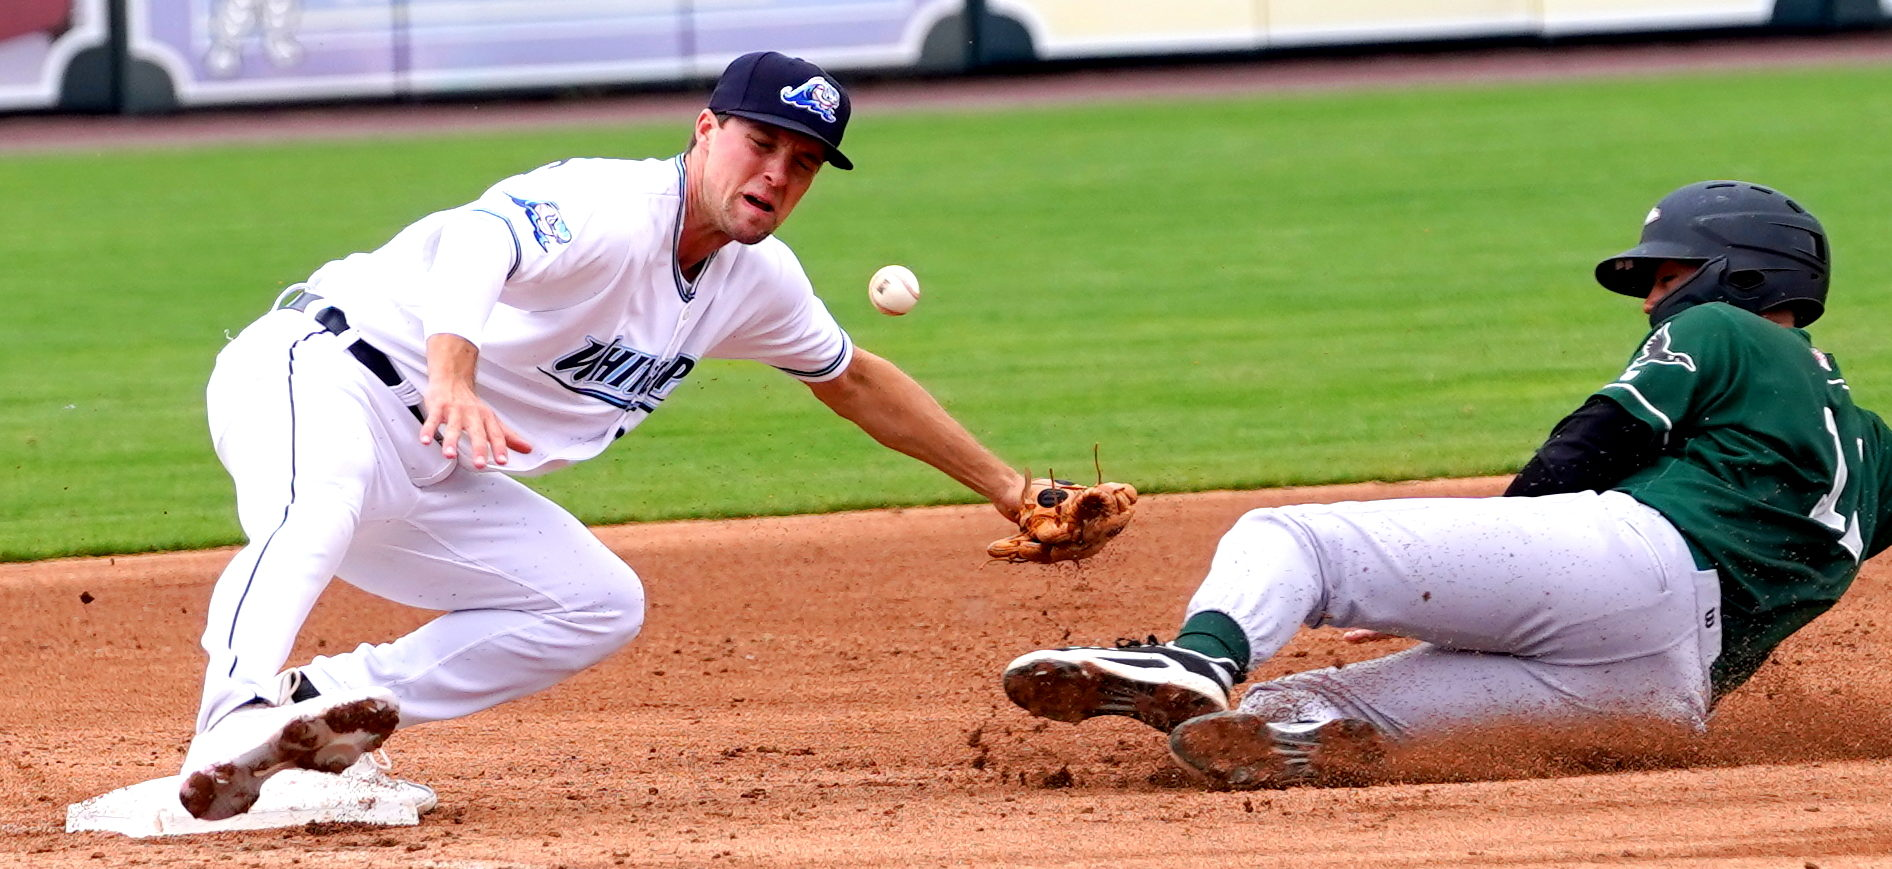 Packard packes a punch, but Whitecaps fall to 4-7 overall on season with home loss to Great Lakes